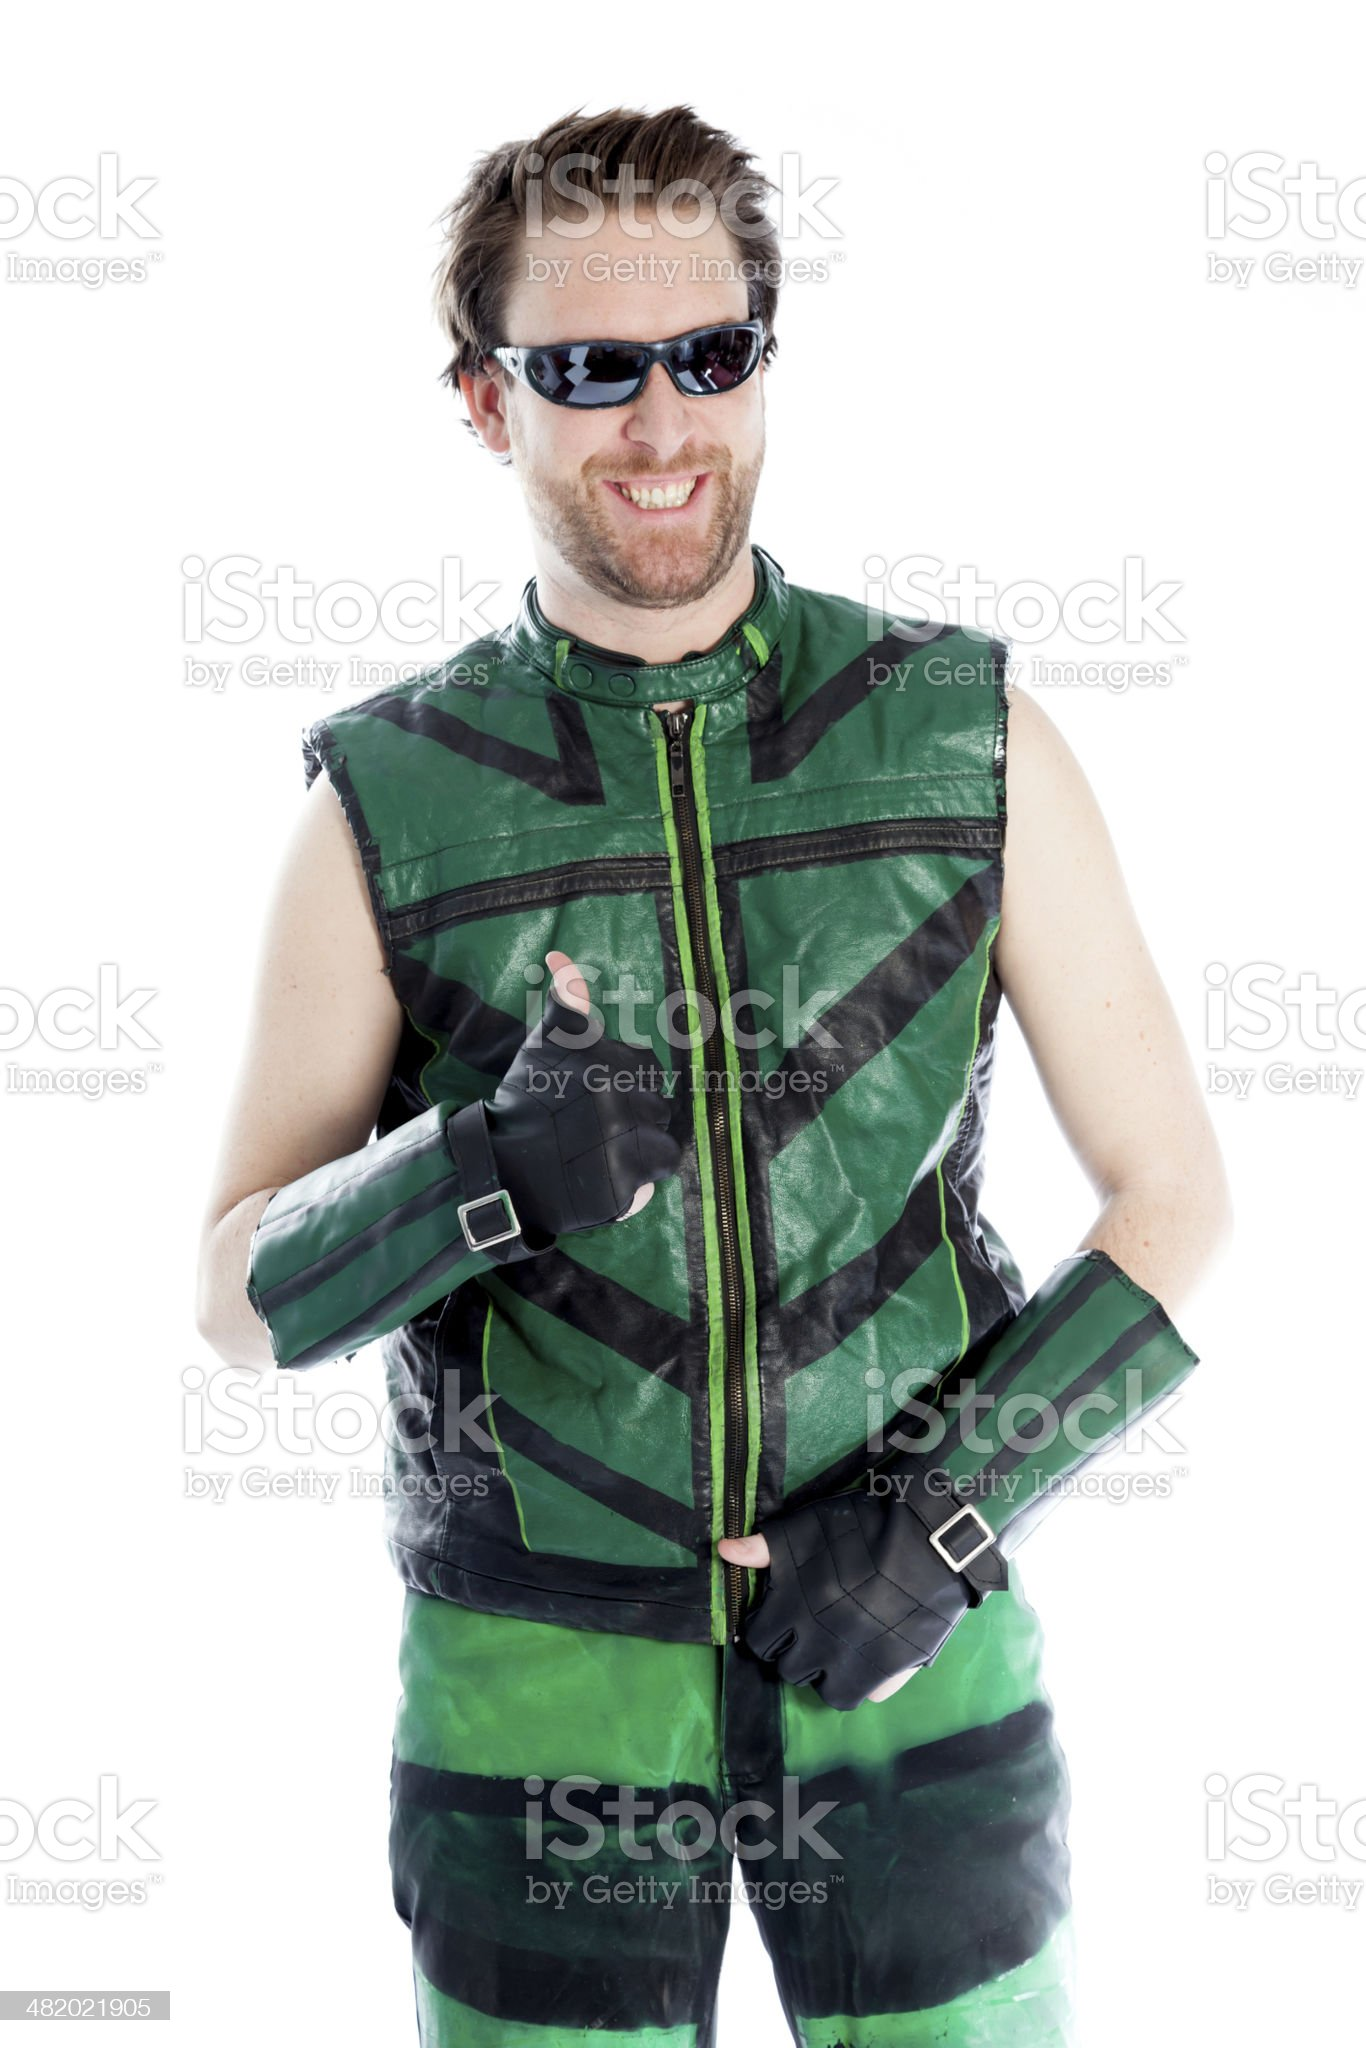 caucasian man disguised as super hero isolated on white royalty-free stock photo